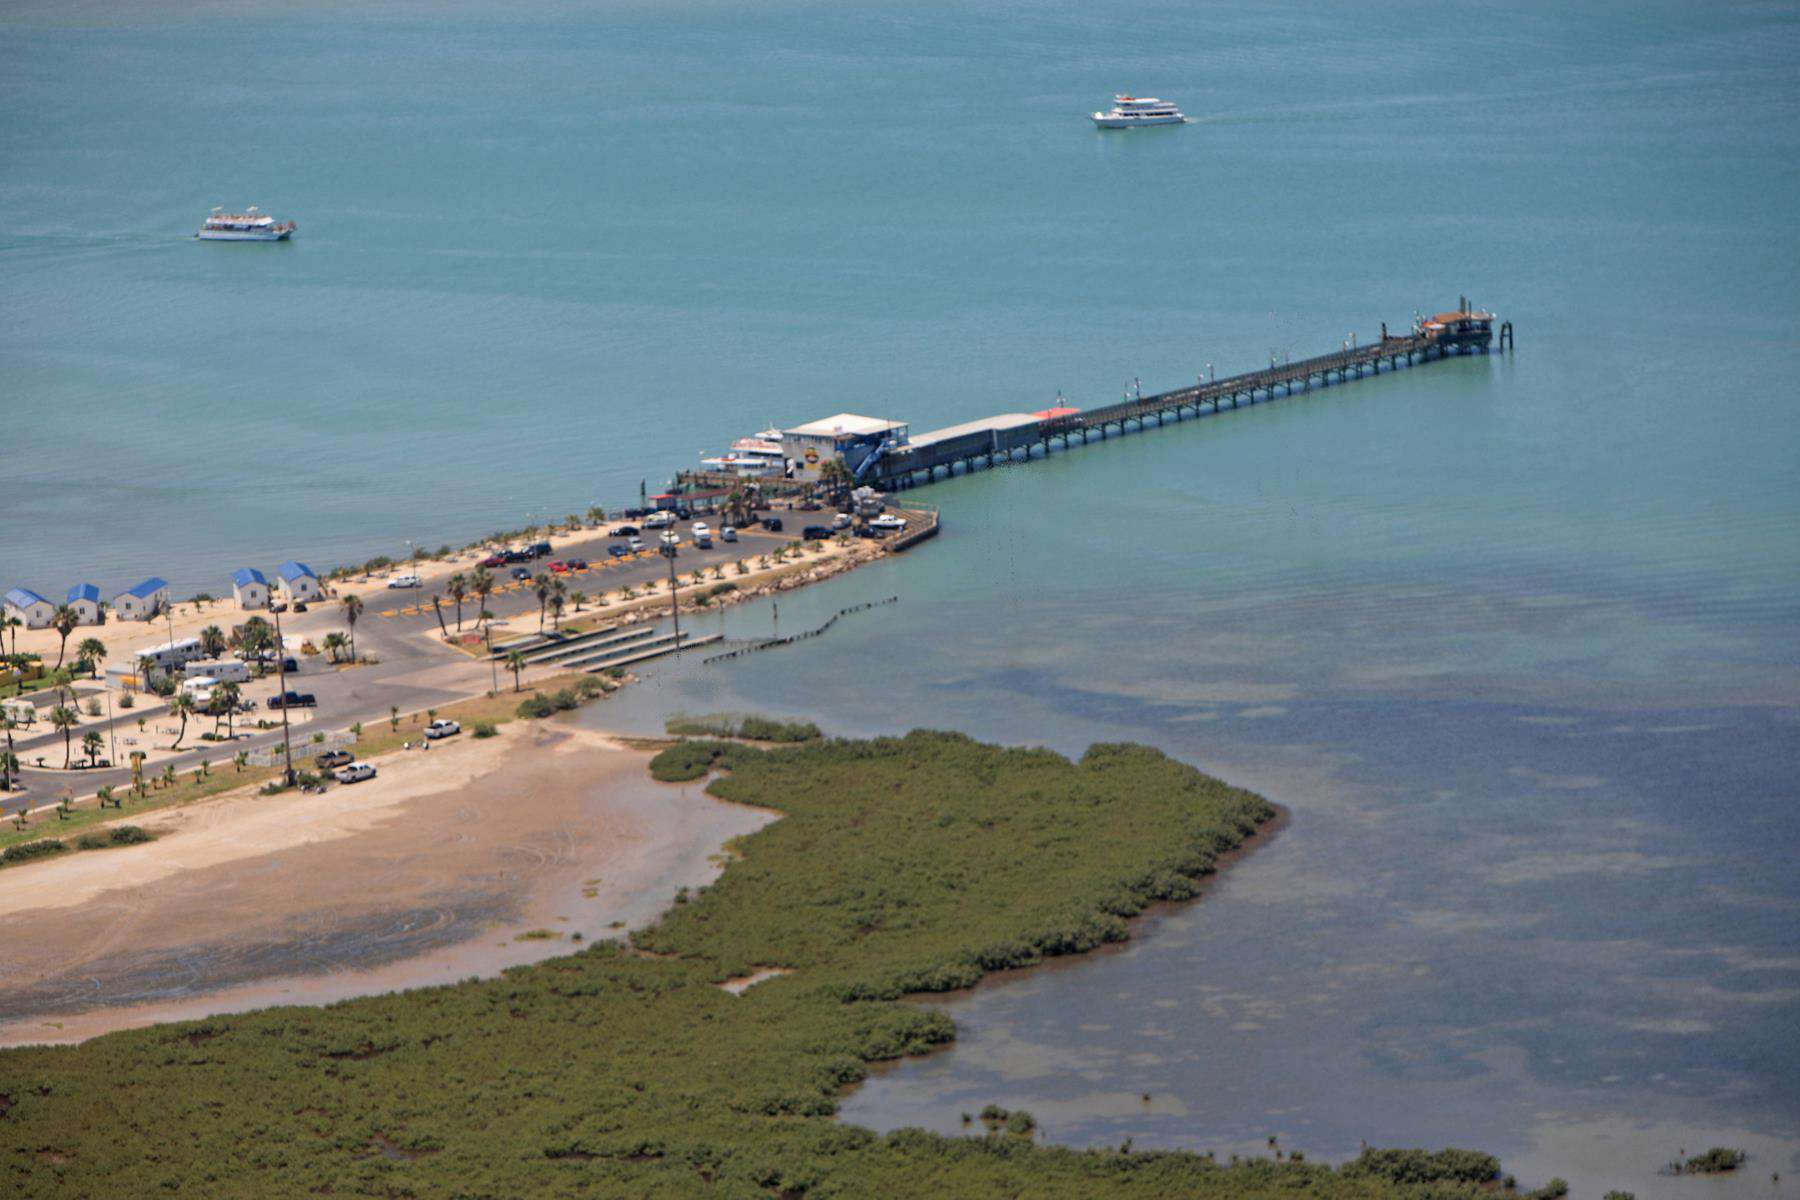 The pier surrounded by the aquamarine waters of the Gulf